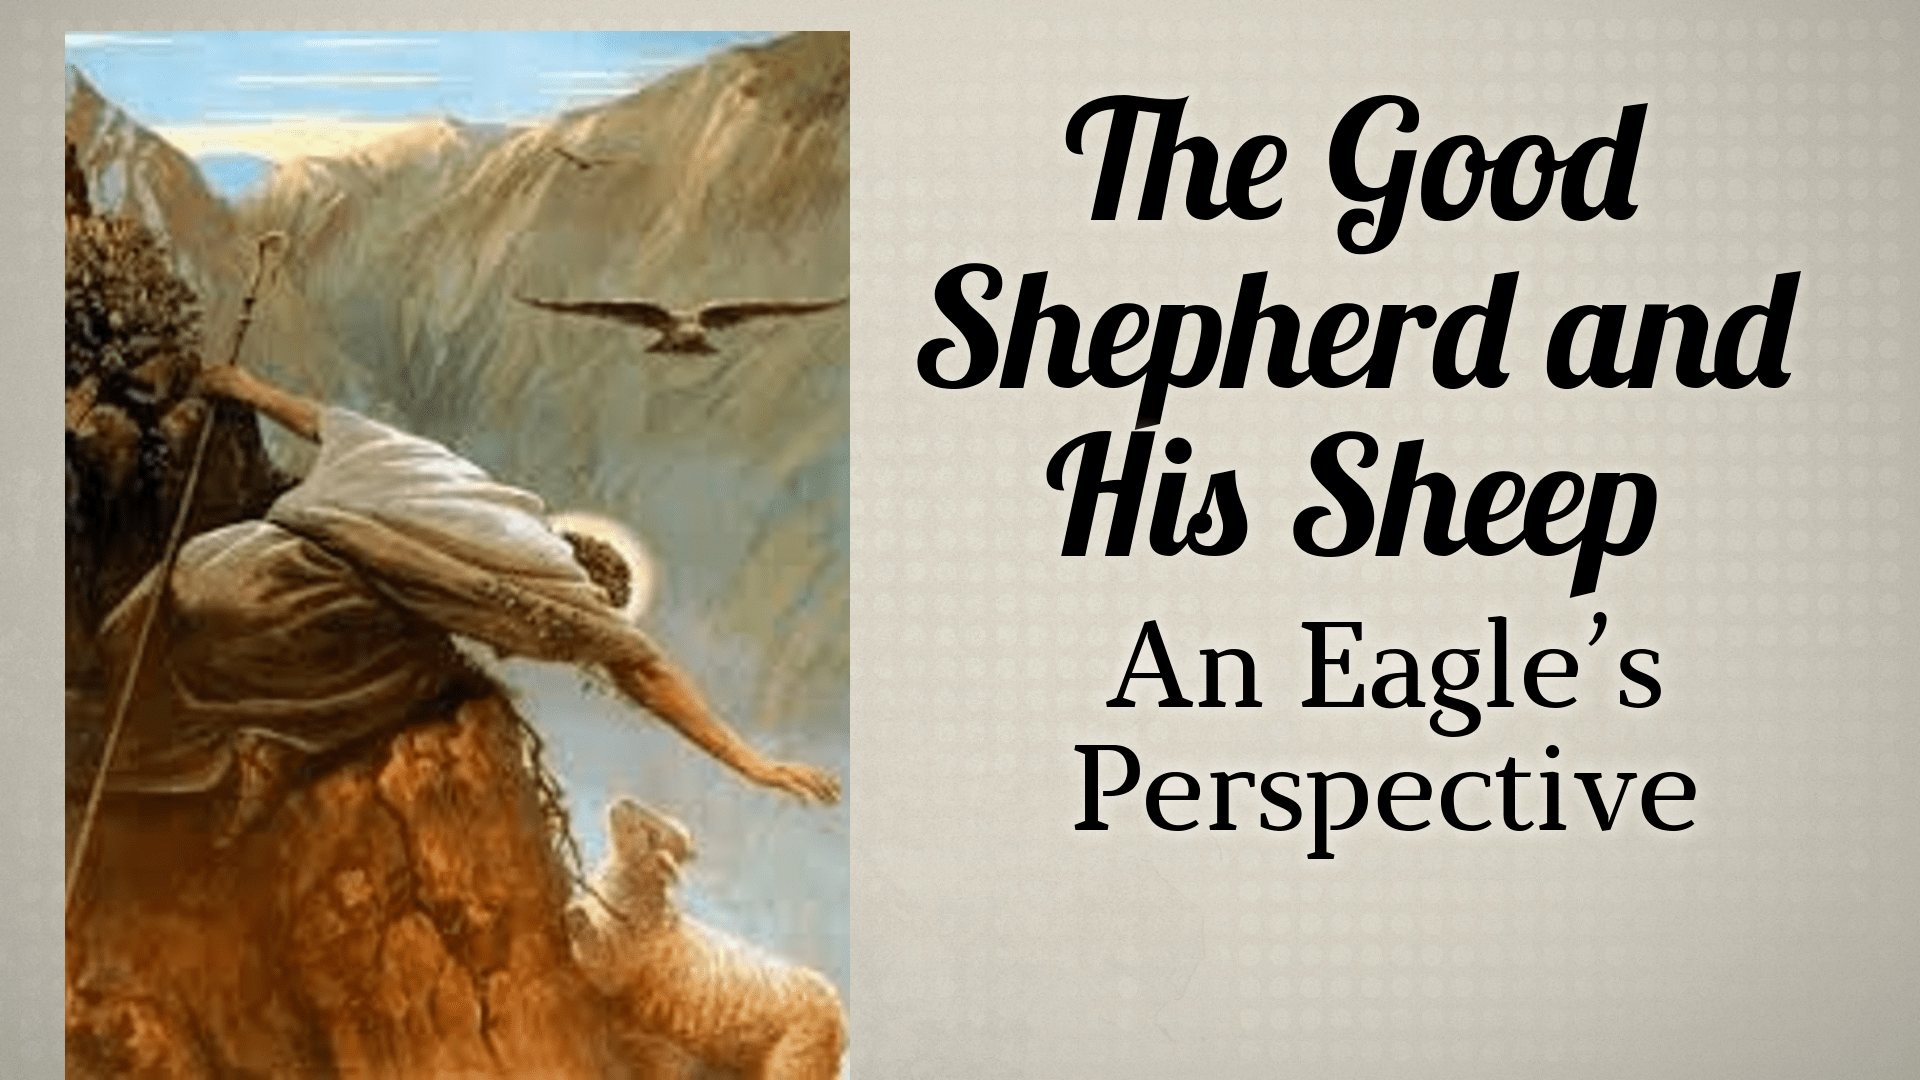 The Good Shepherd - An Eagle's Perspective